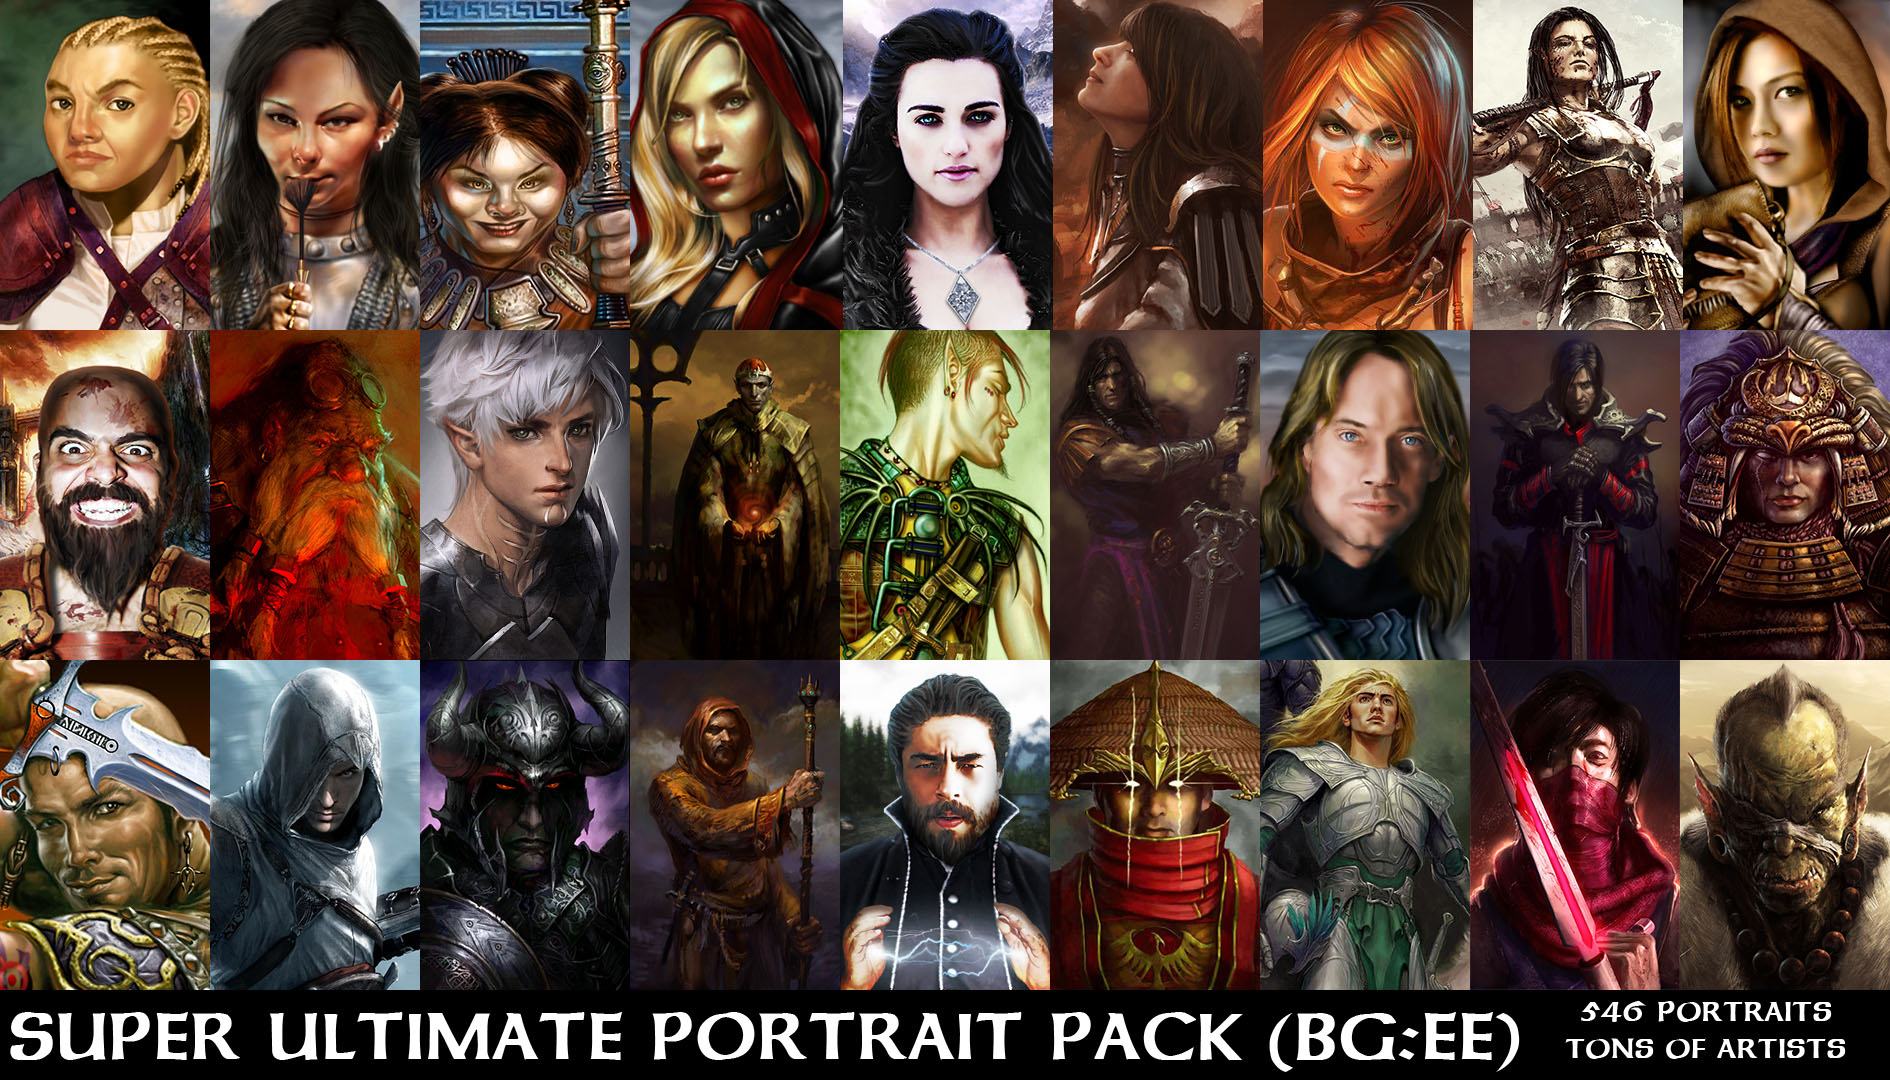 New portrait pack: faces of good and evil the beamblog.